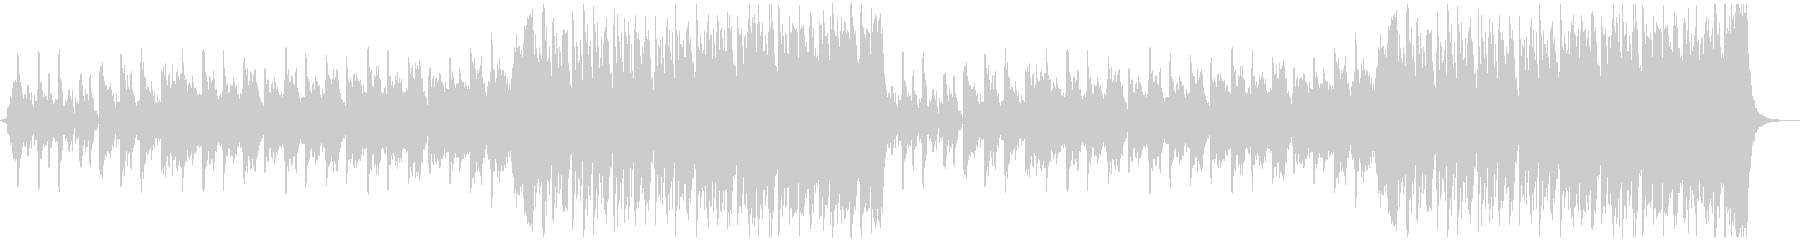 A suspicious and comical Halloween waltz's unreproduced waveform